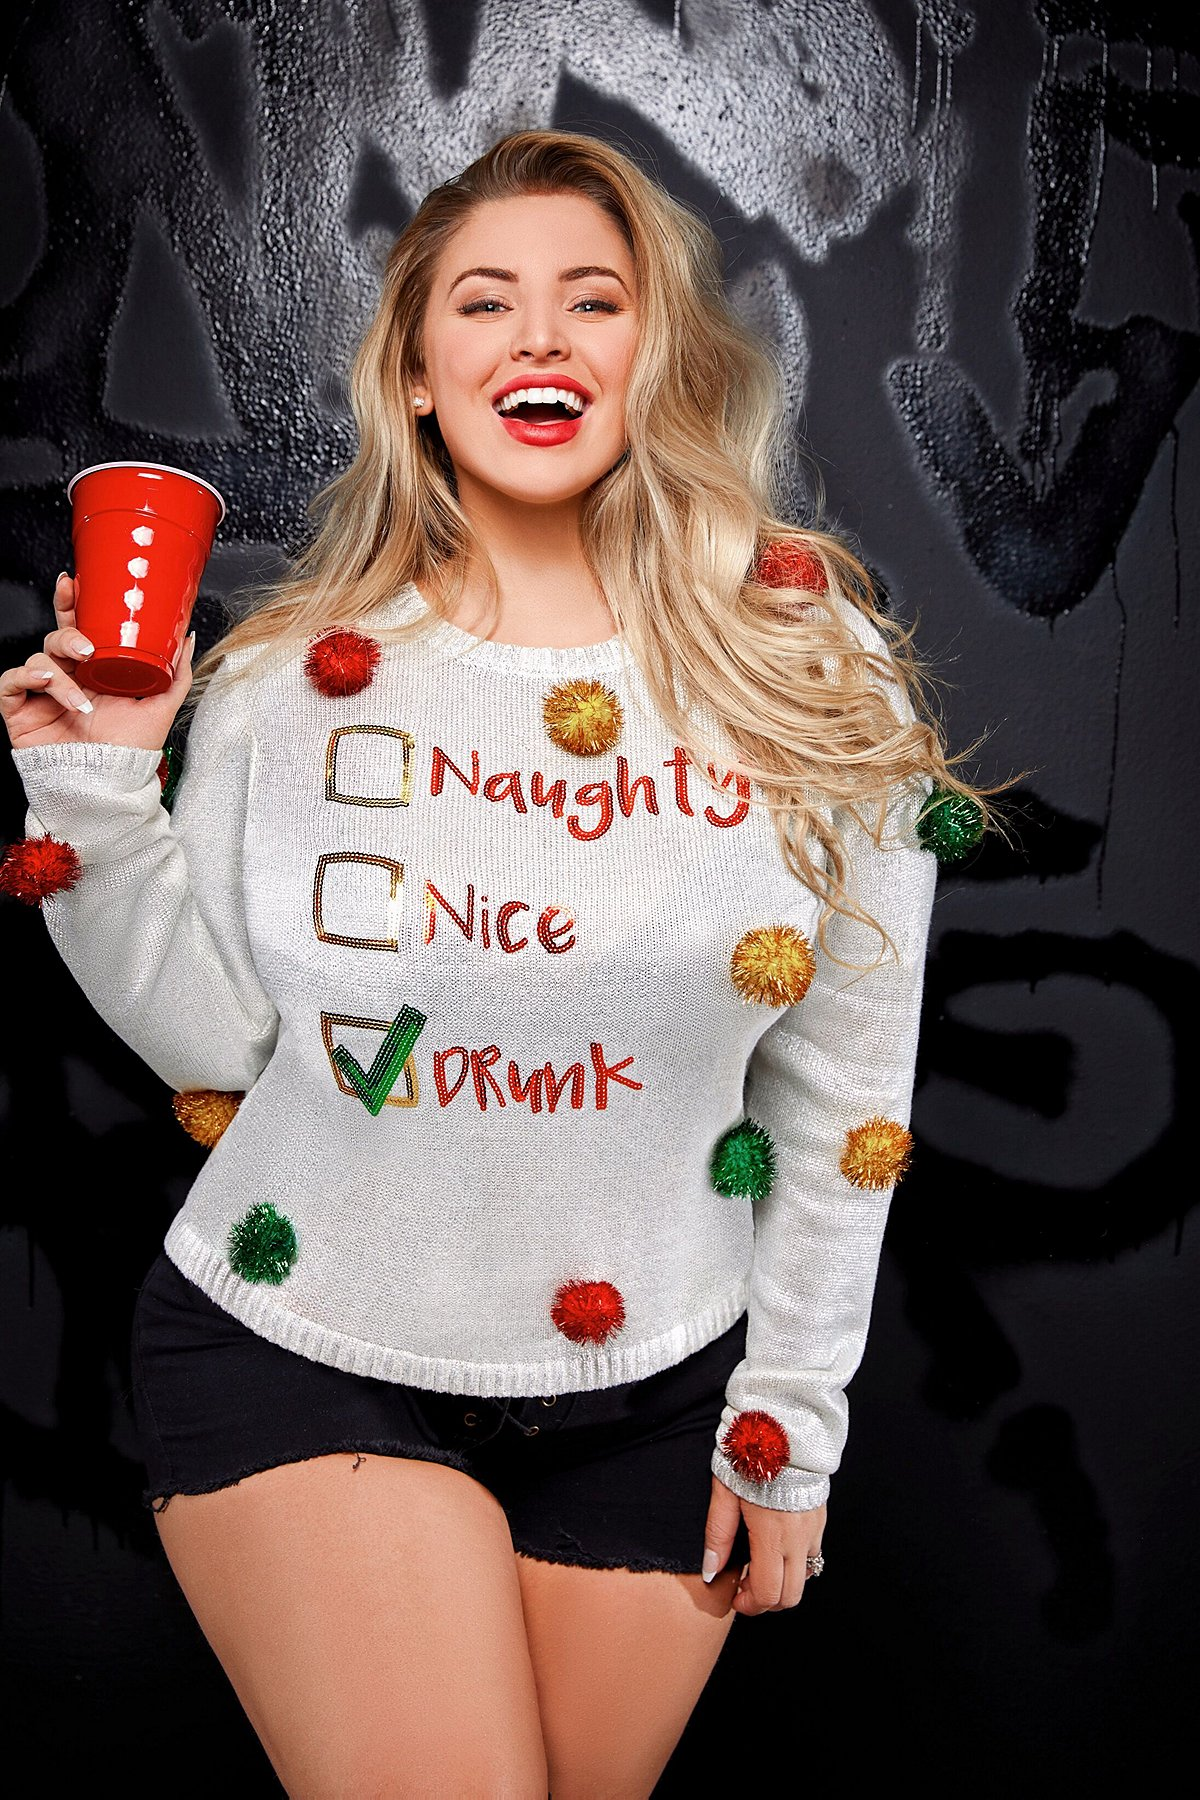 Naughty Nice Drunk Ashley Alexiss Ugly Christmas Sweater